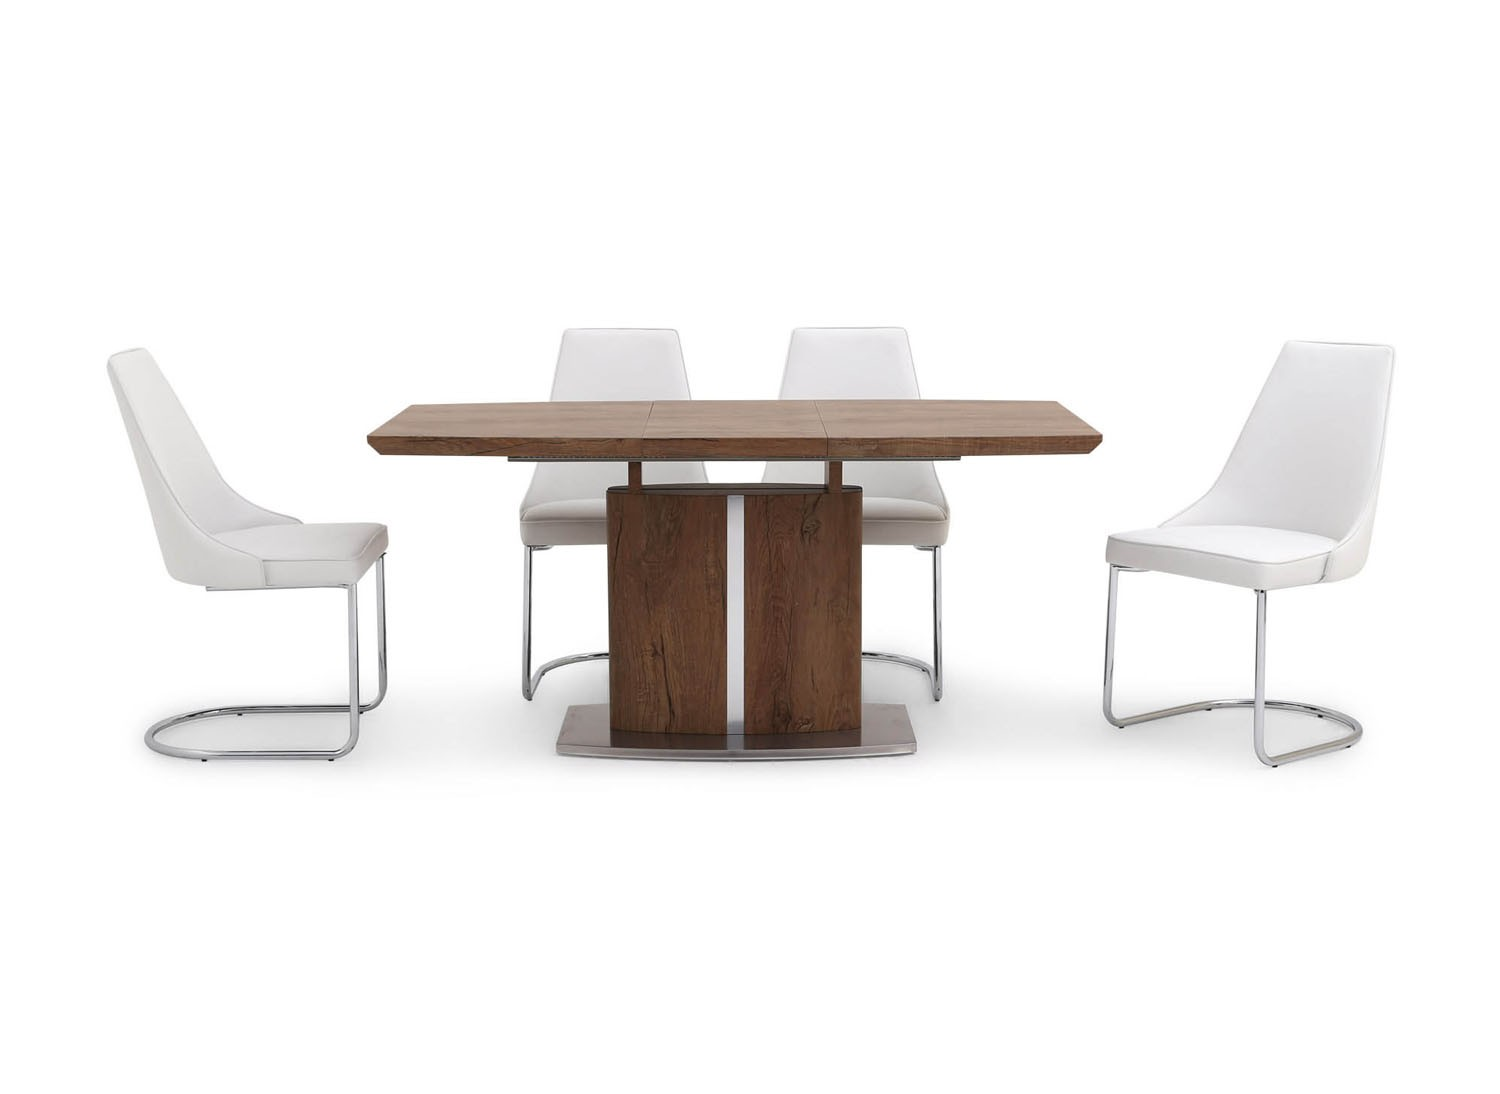 Fairmont Thiago Ext Walnut Dining Table + 4 Mya Grey Chairs